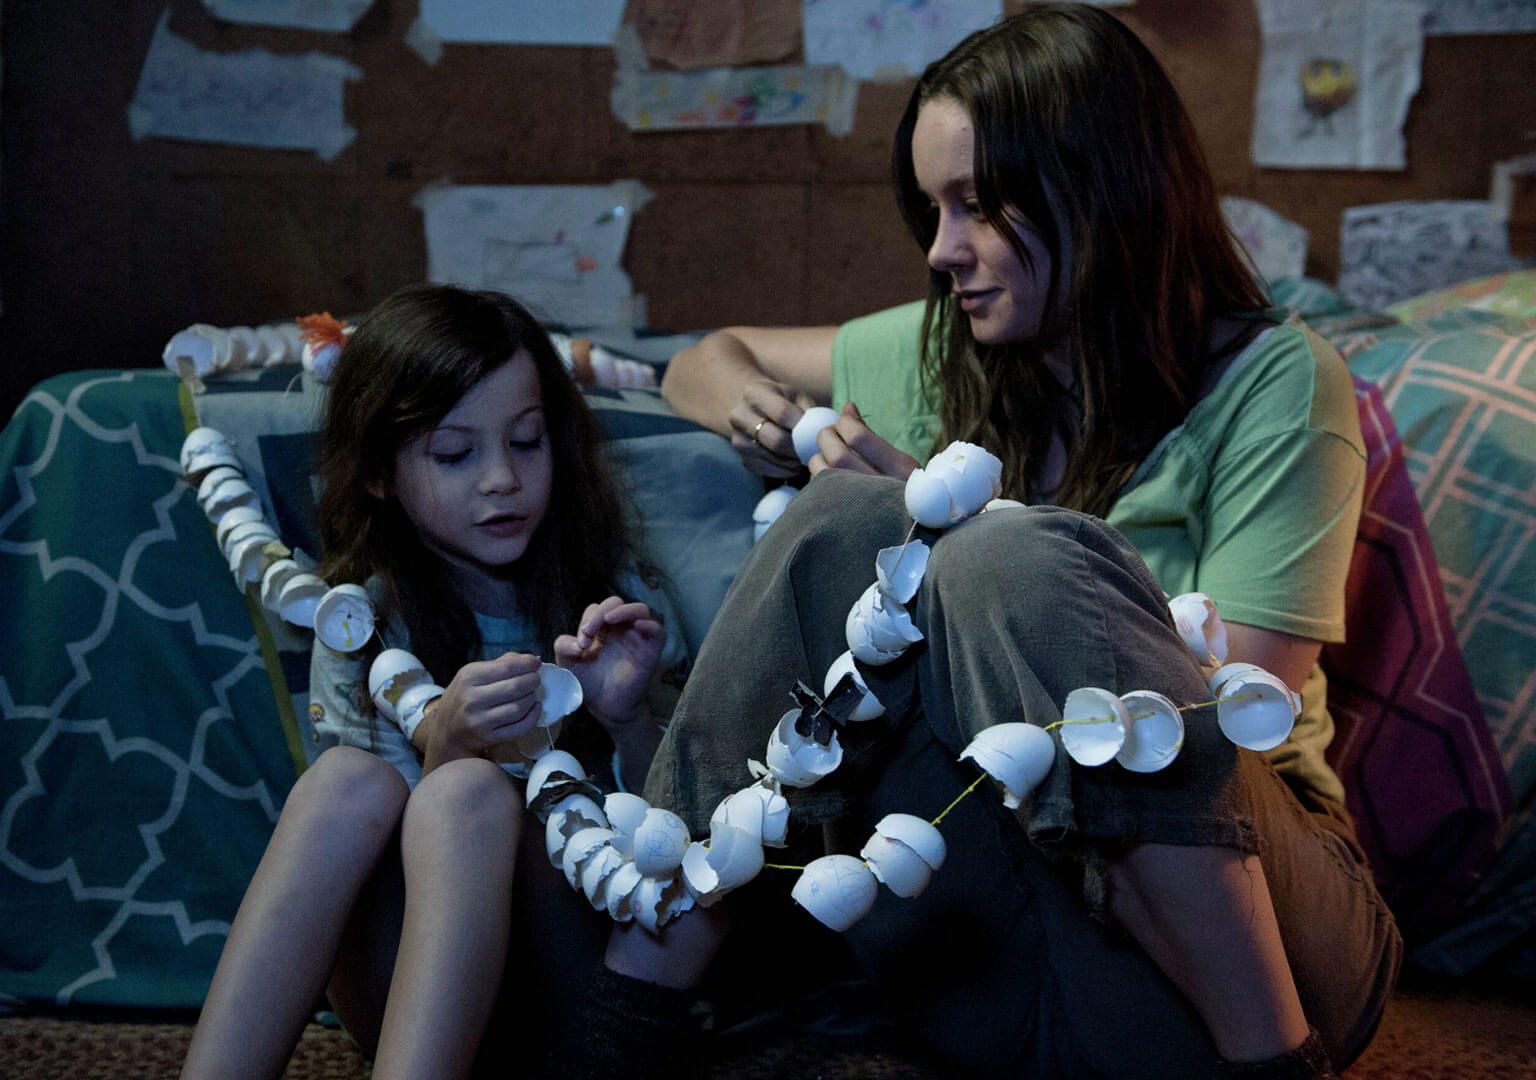 Video still from Room